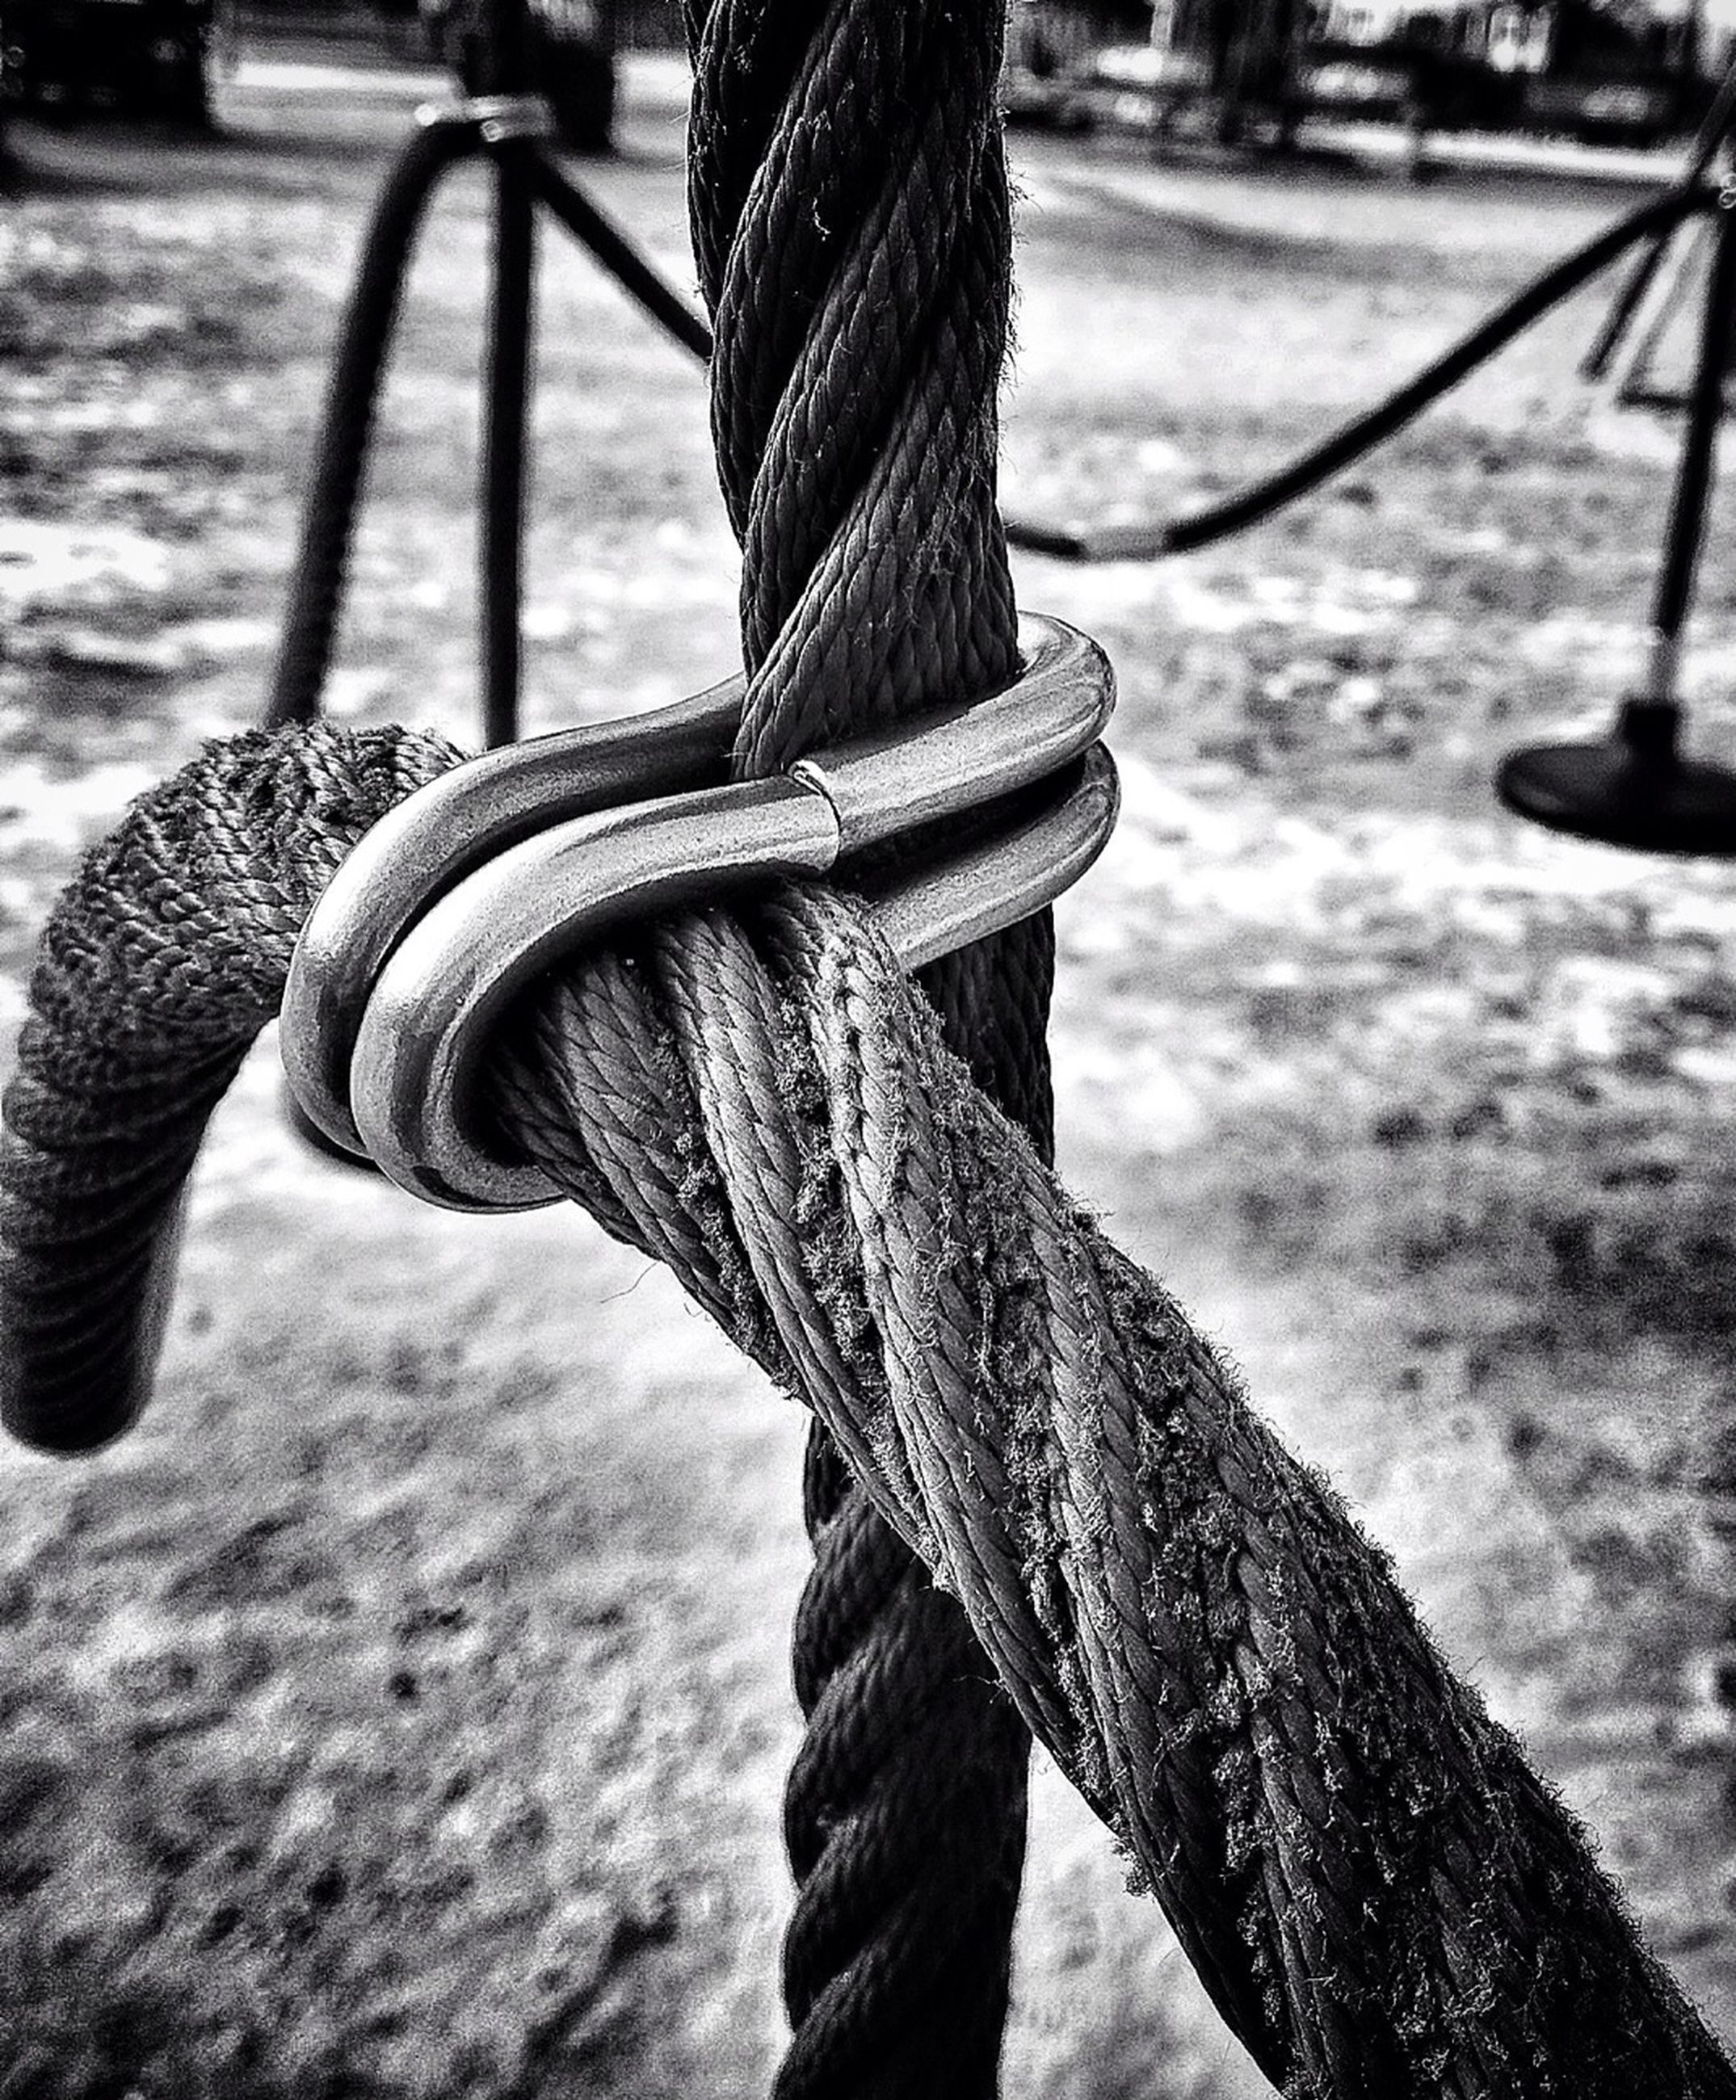 metal, focus on foreground, close-up, metallic, transportation, day, part of, wheel, outdoors, sunlight, strength, rope, no people, connection, river, water, tire, park - man made space, sky, cropped